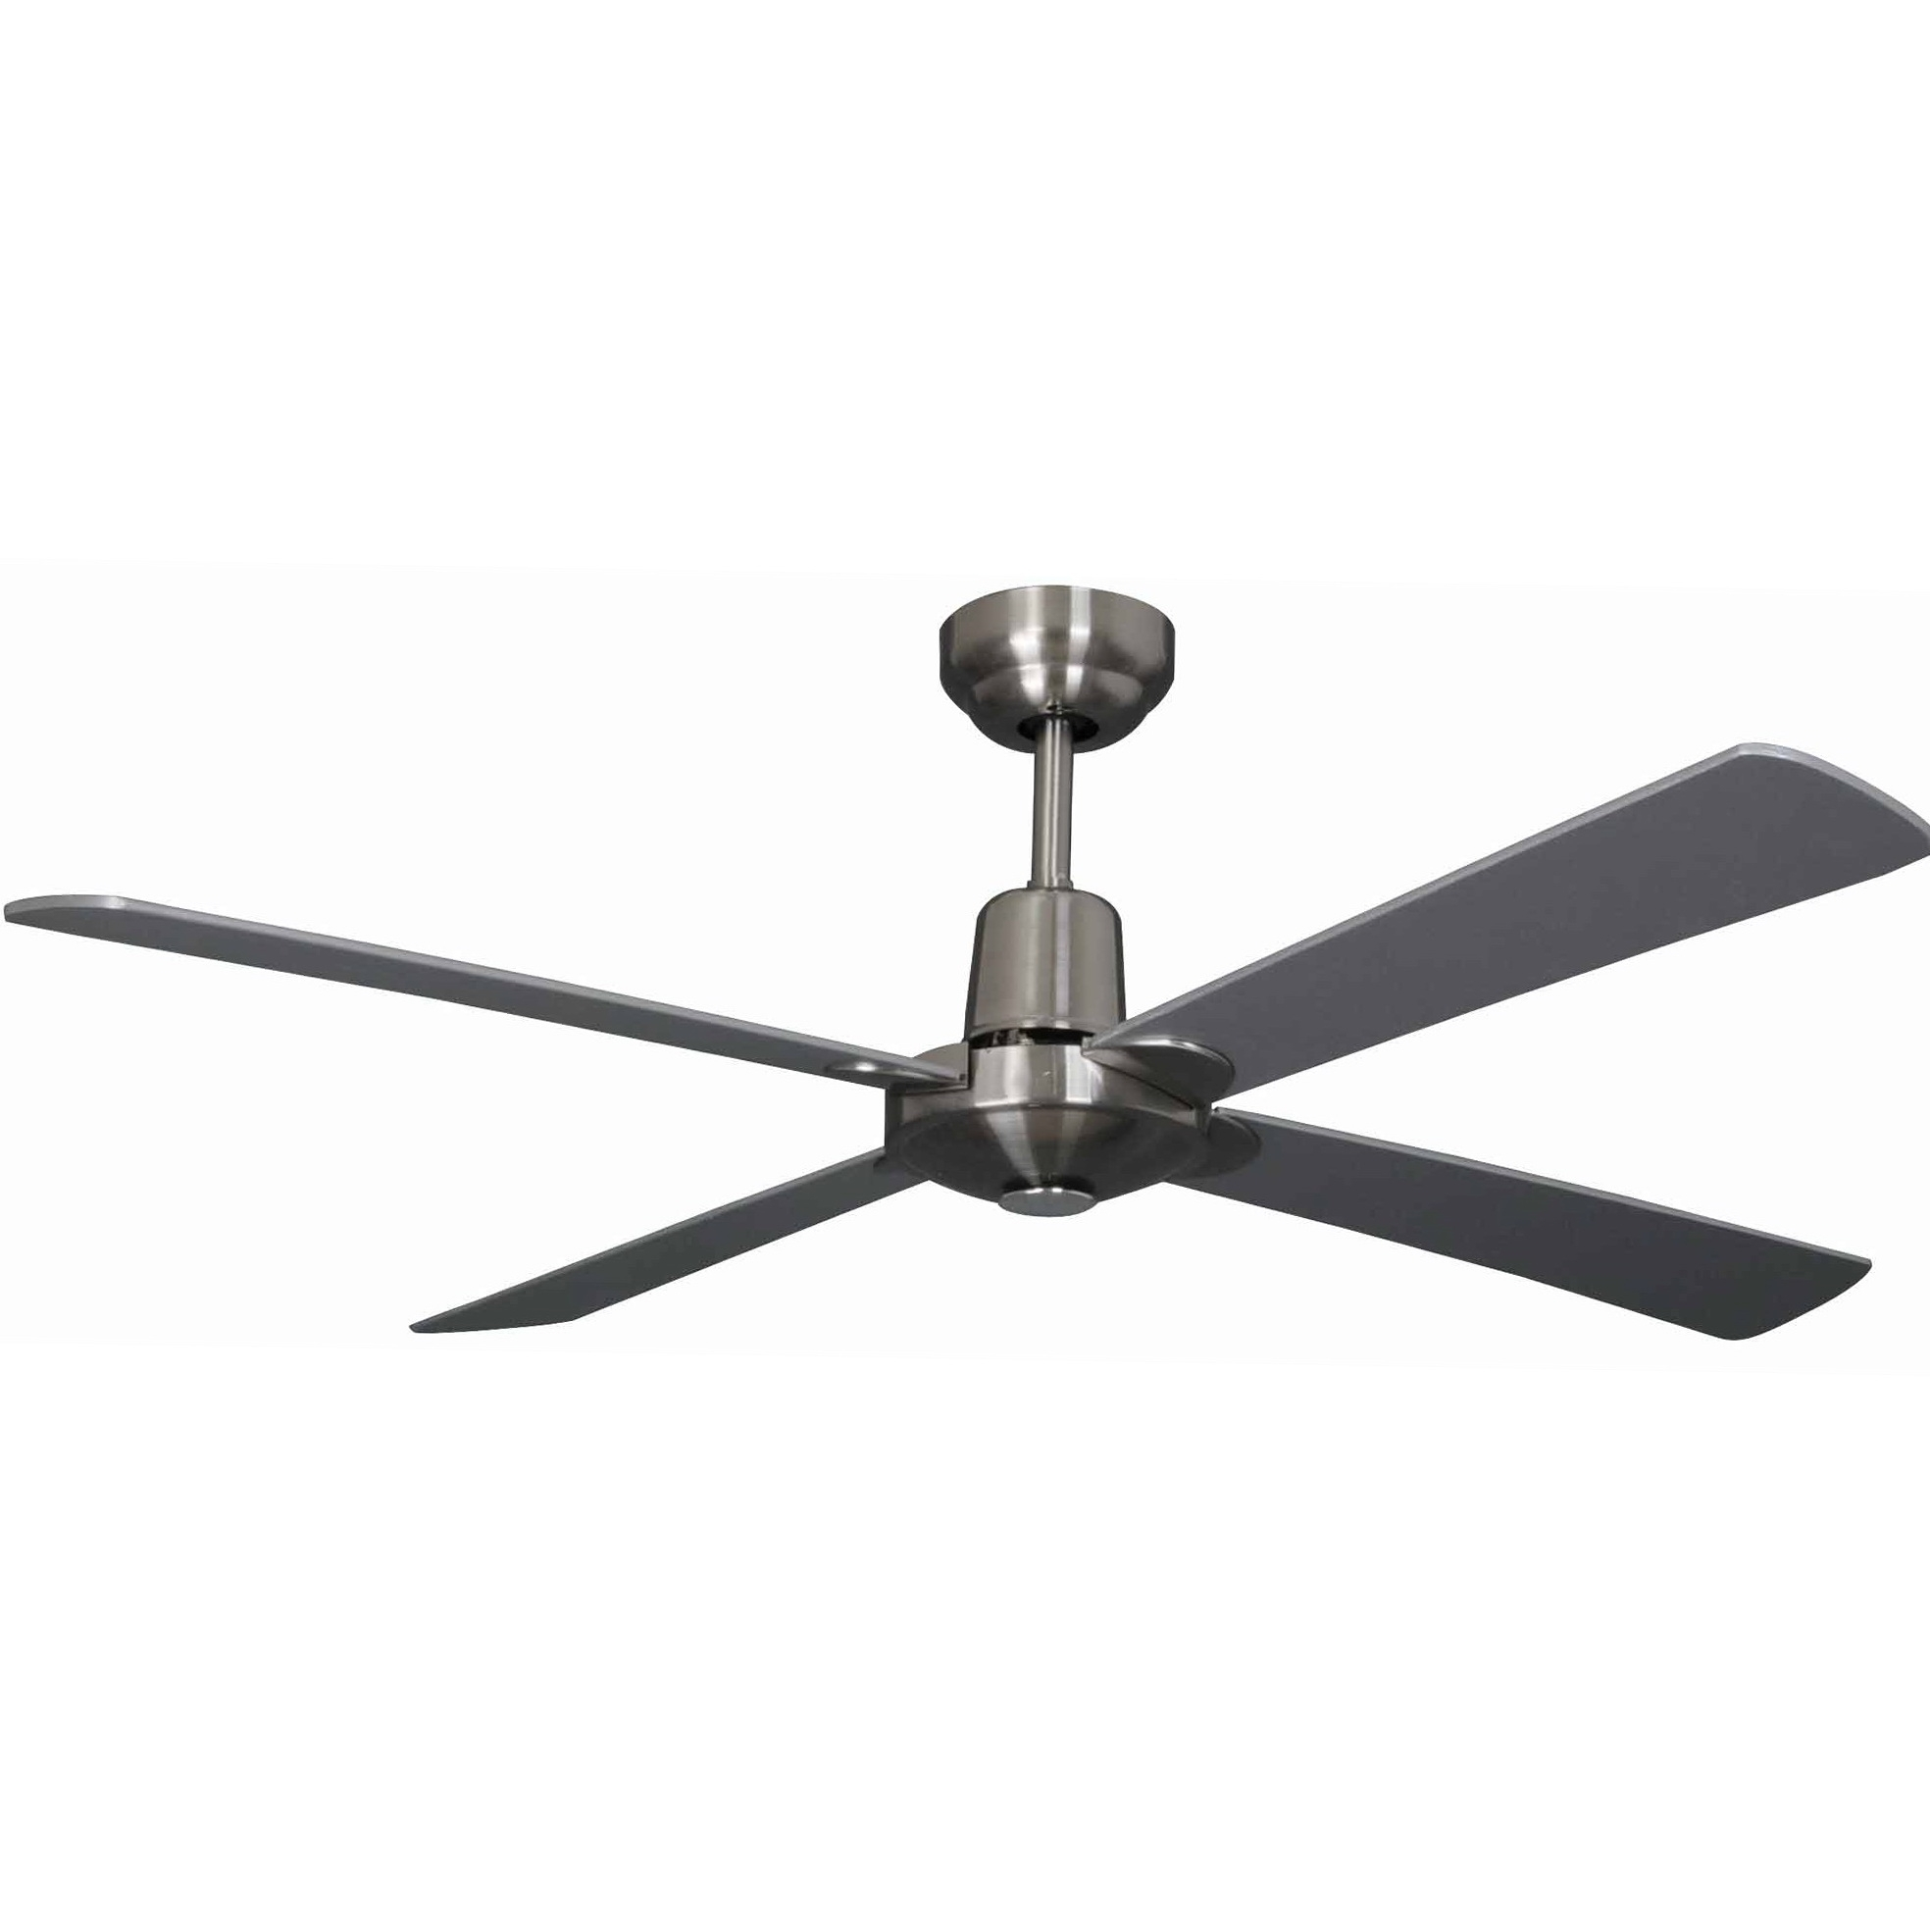 Newest Ceiling Fan With Light Kit And Remote Control Hugger Outdoor Fans For Outdoor Ceiling Fans With Remote Control Lights (View 6 of 20)